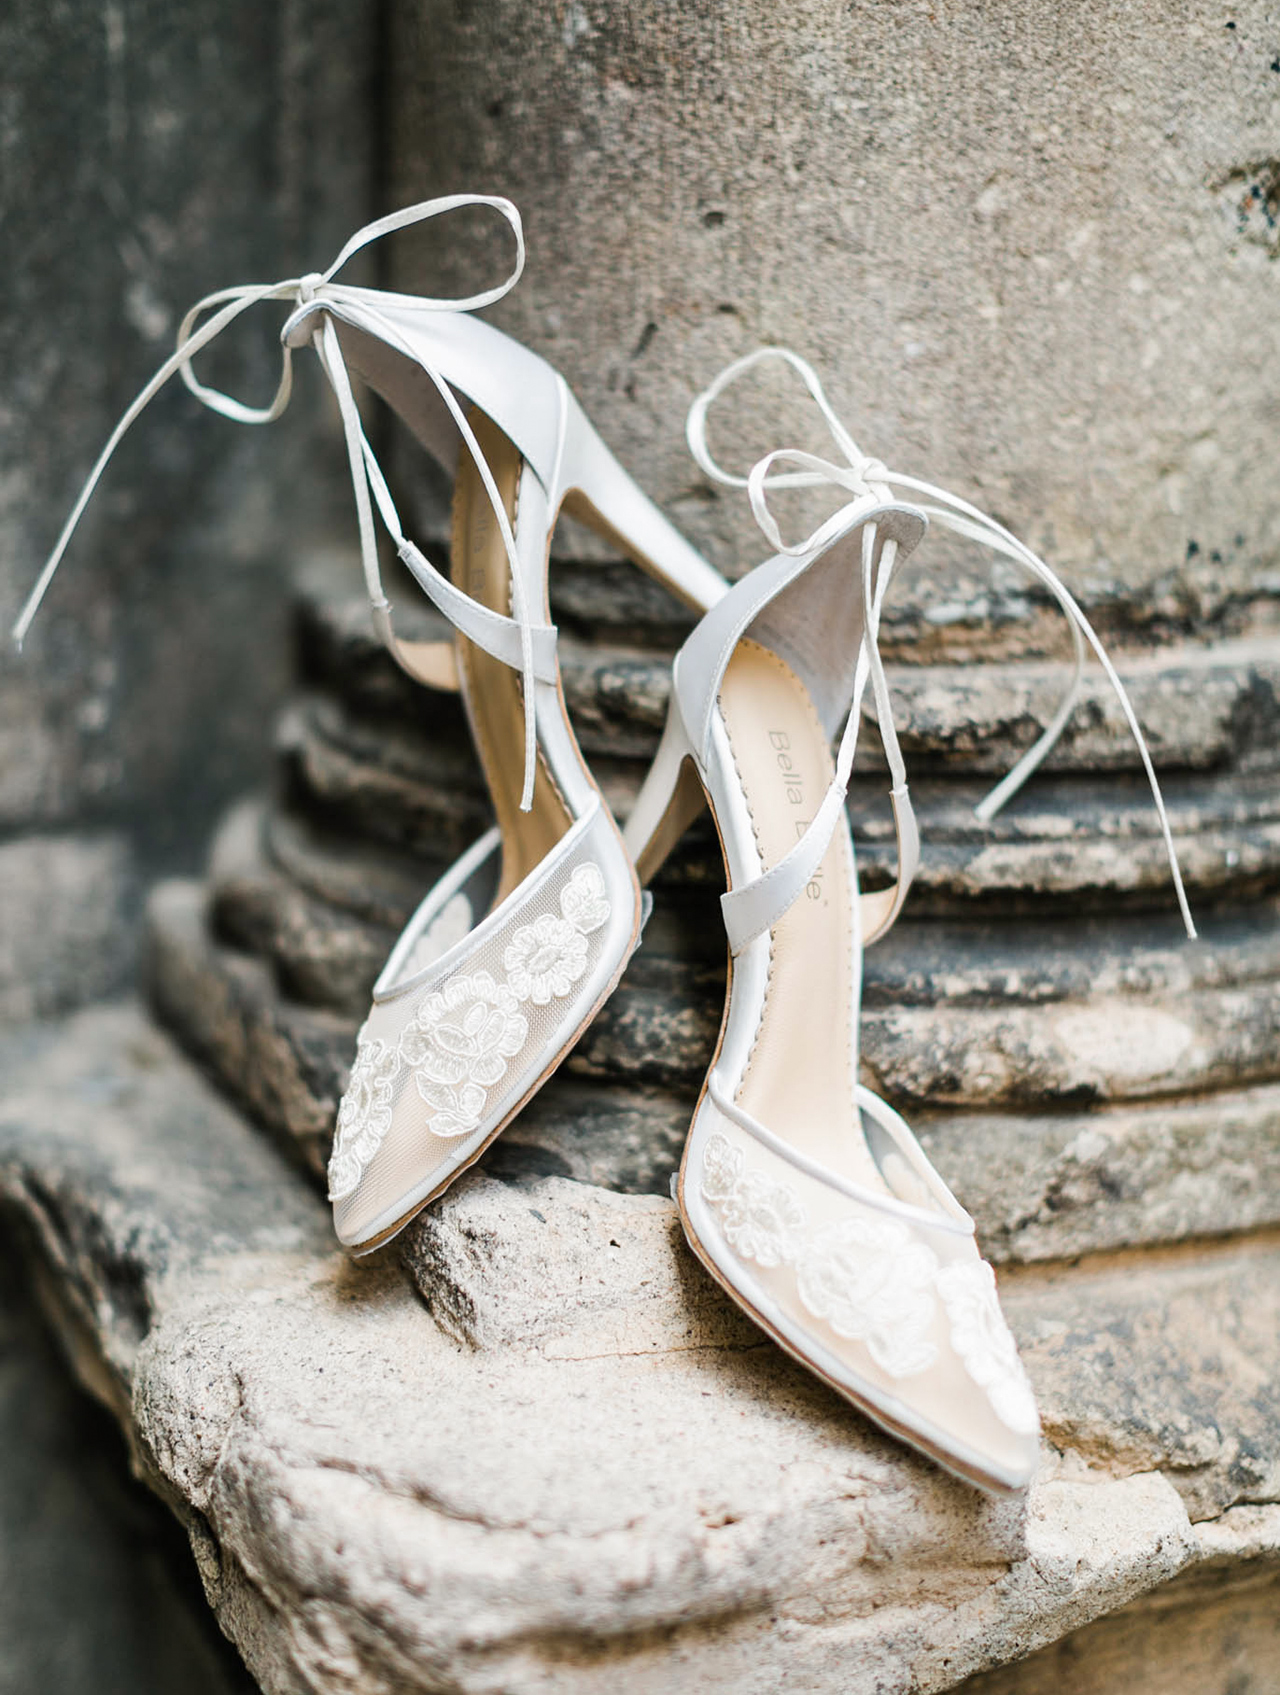 brides white chanel sling backs shoes